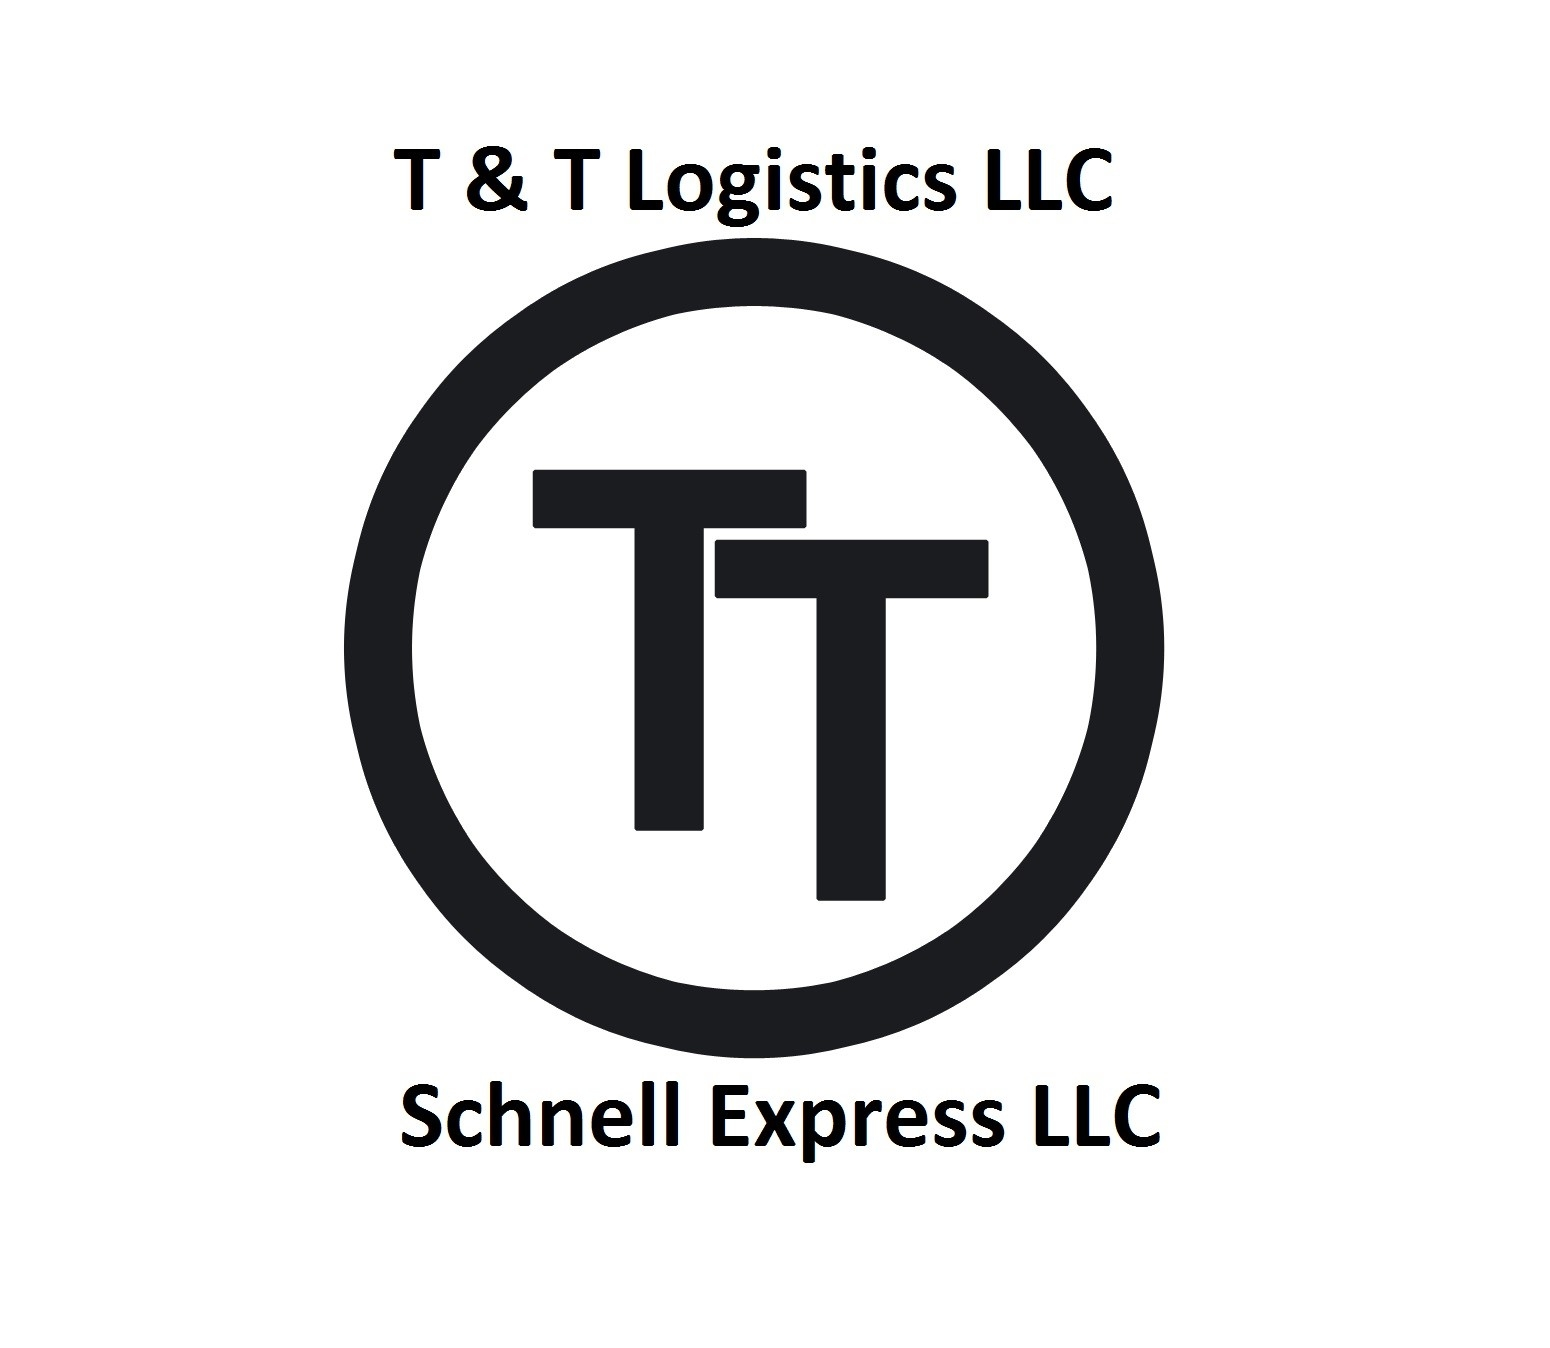 Logo for T & T Logistics LLC